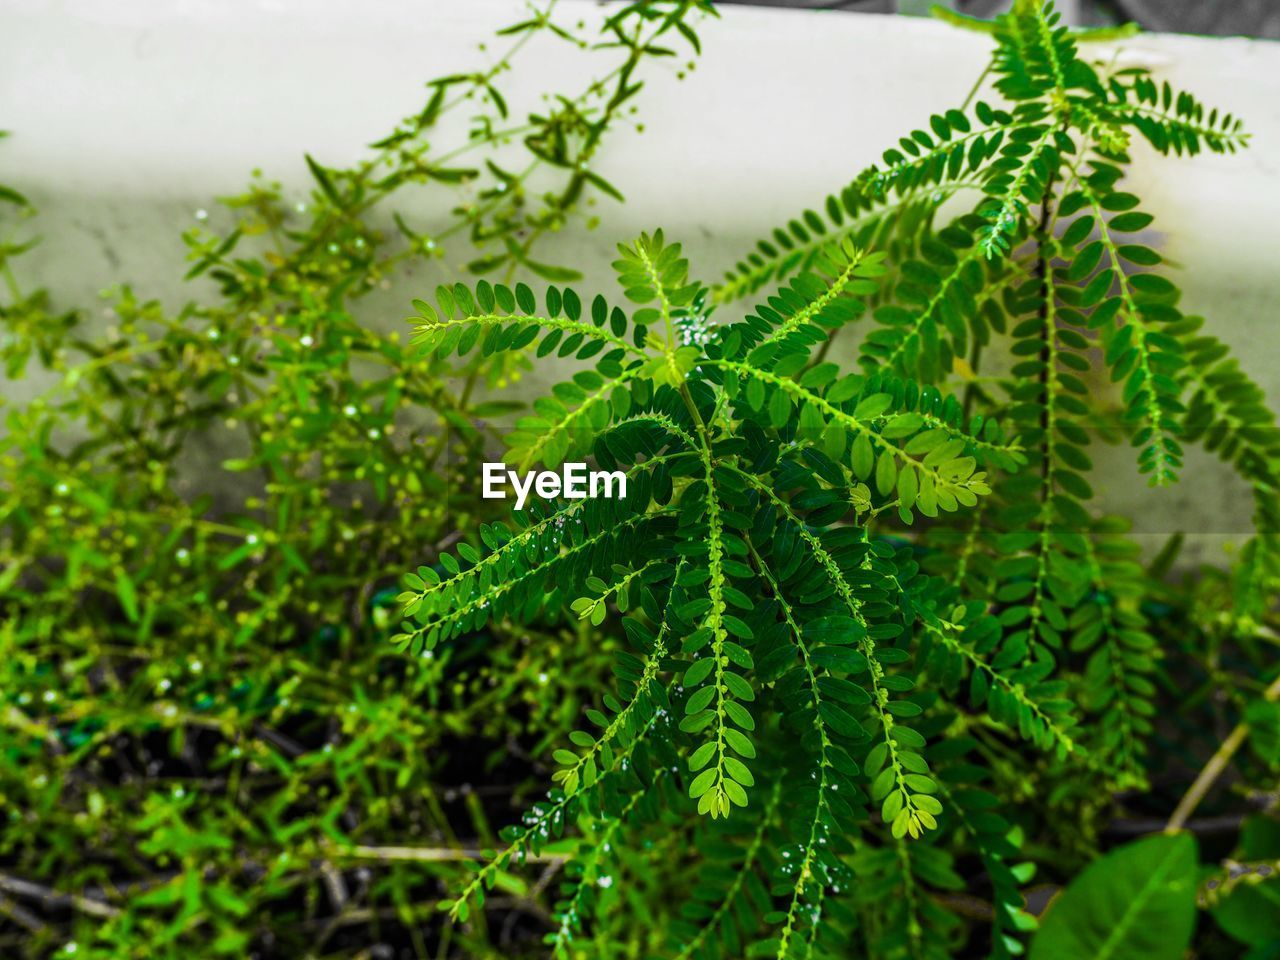 green color, plant, growth, leaf, plant part, beauty in nature, nature, close-up, day, no people, focus on foreground, selective focus, outdoors, freshness, tranquility, tree, fern, high angle view, fragility, vulnerability, leaves